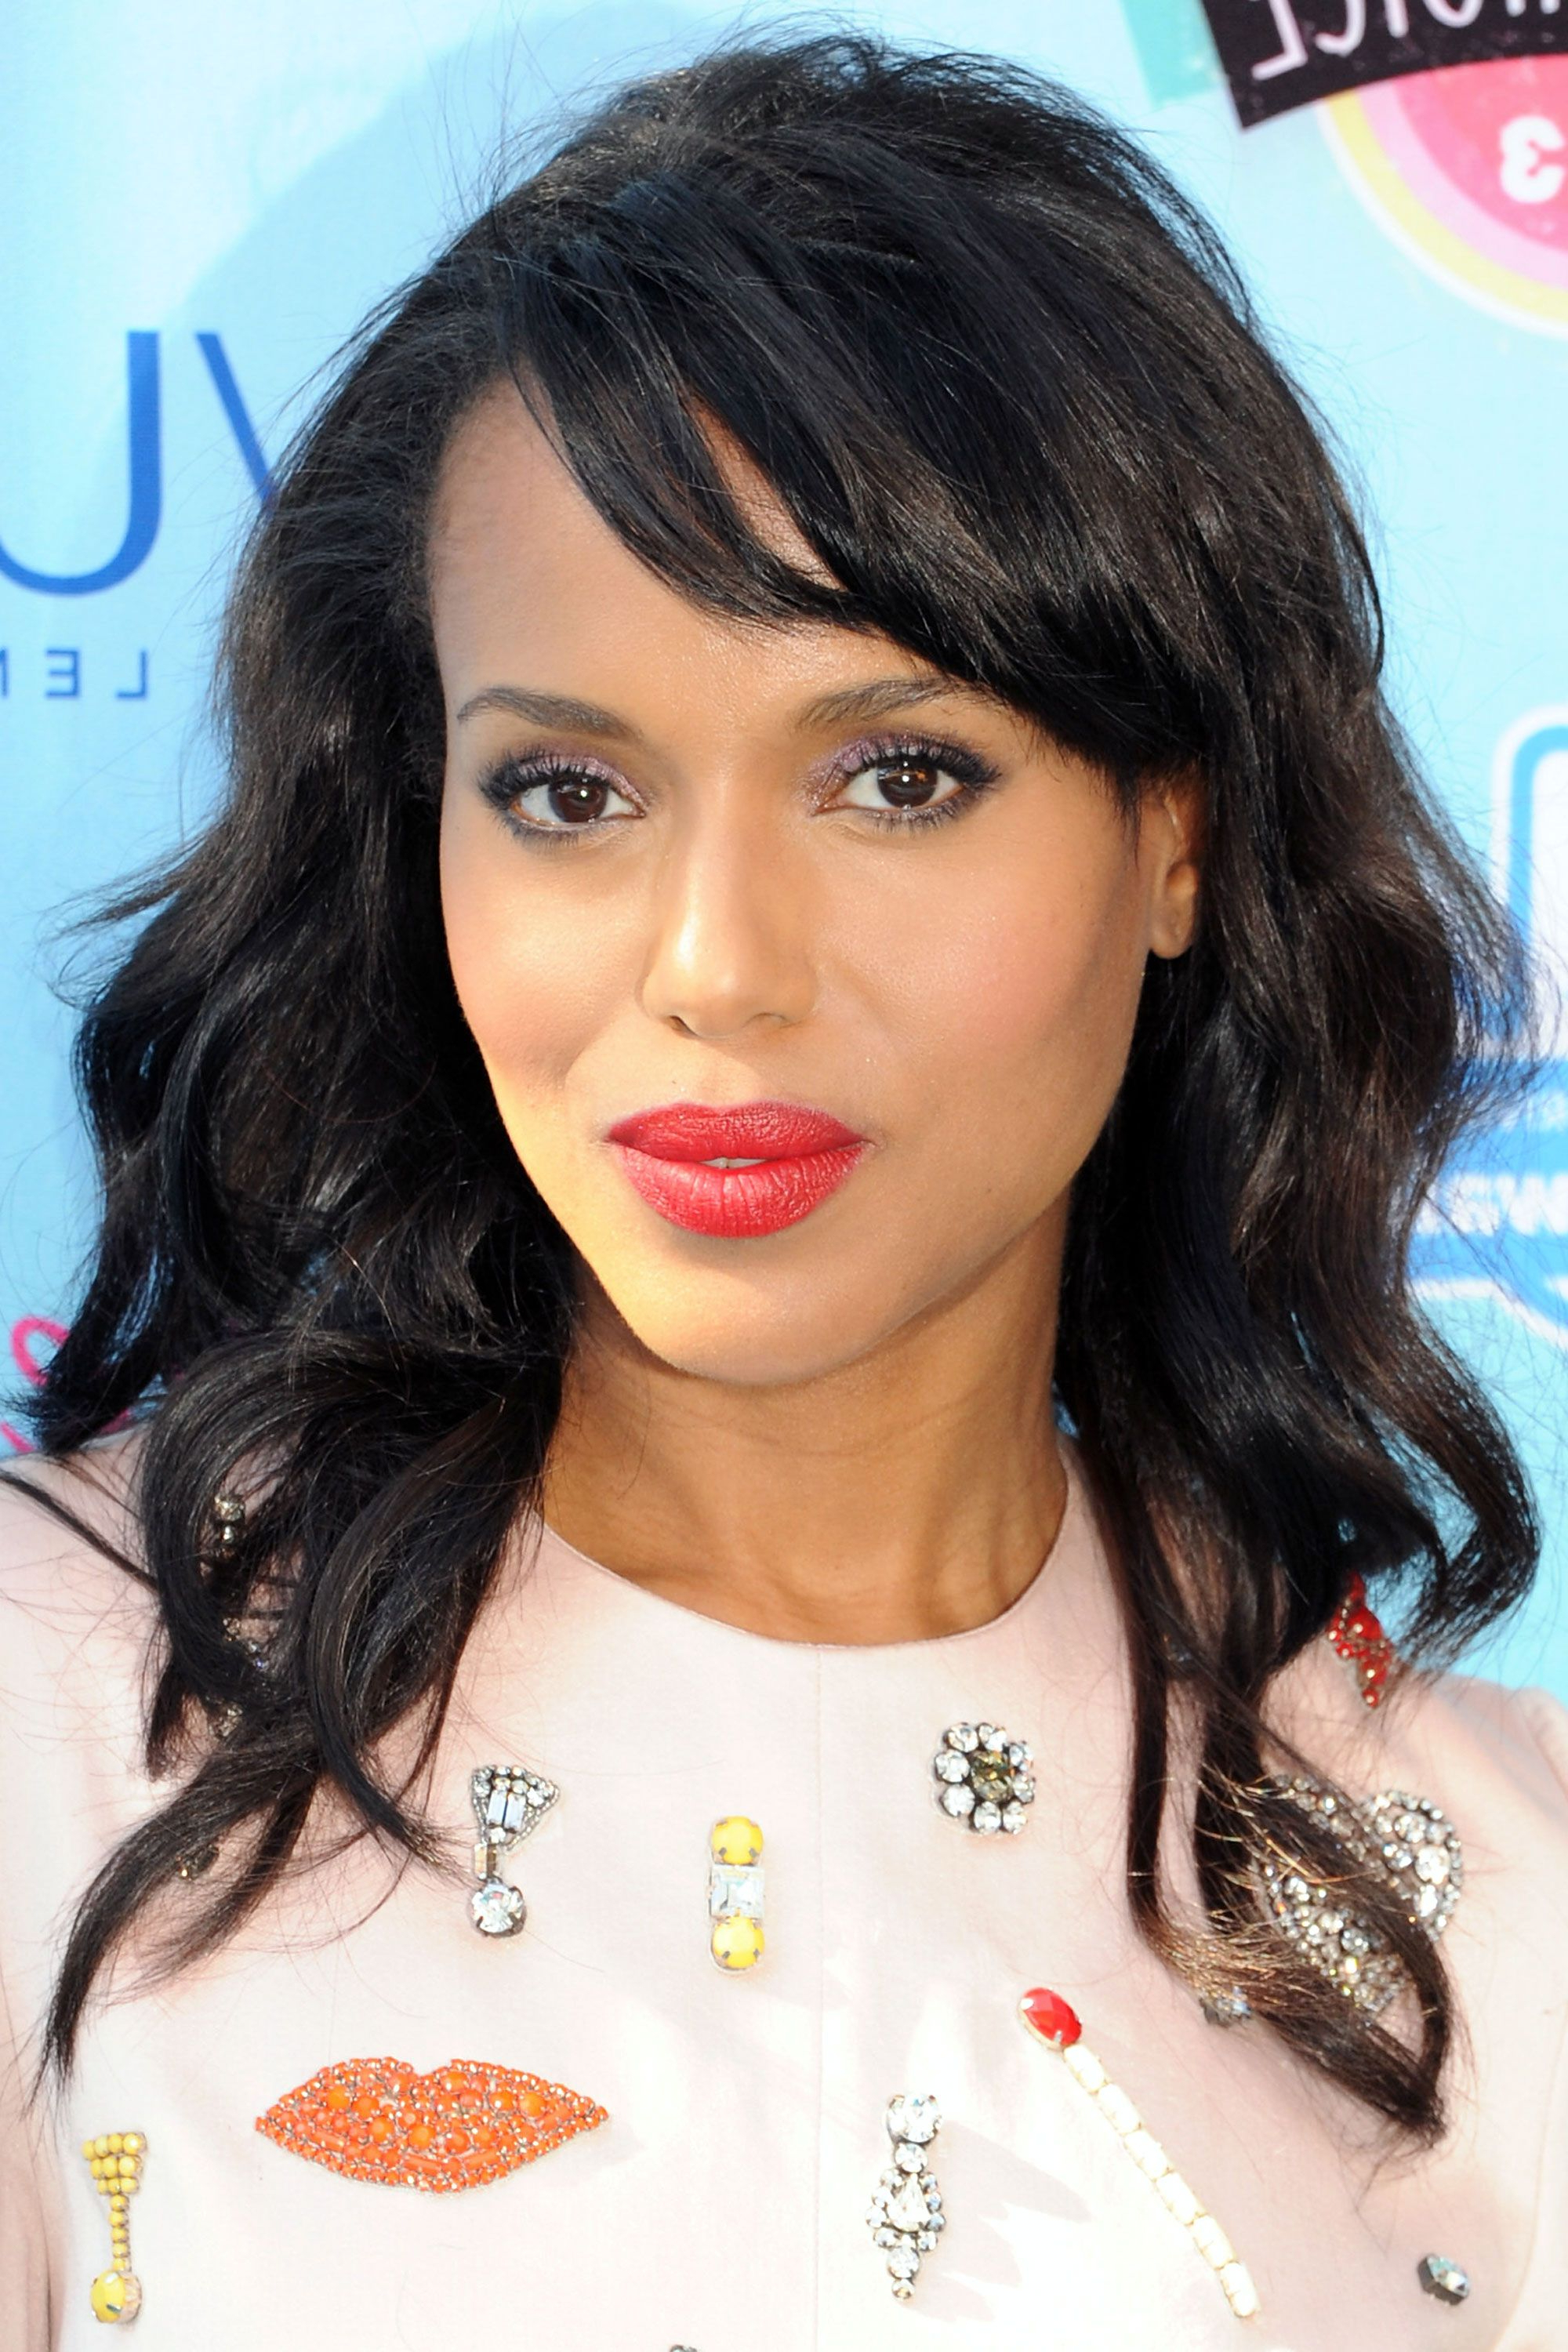 40 Best Medium Hairstyles – Celebrities With Shoulder Length Haircuts Regarding Most Recent Medium Haircuts For Black Women With Long Faces (View 7 of 20)